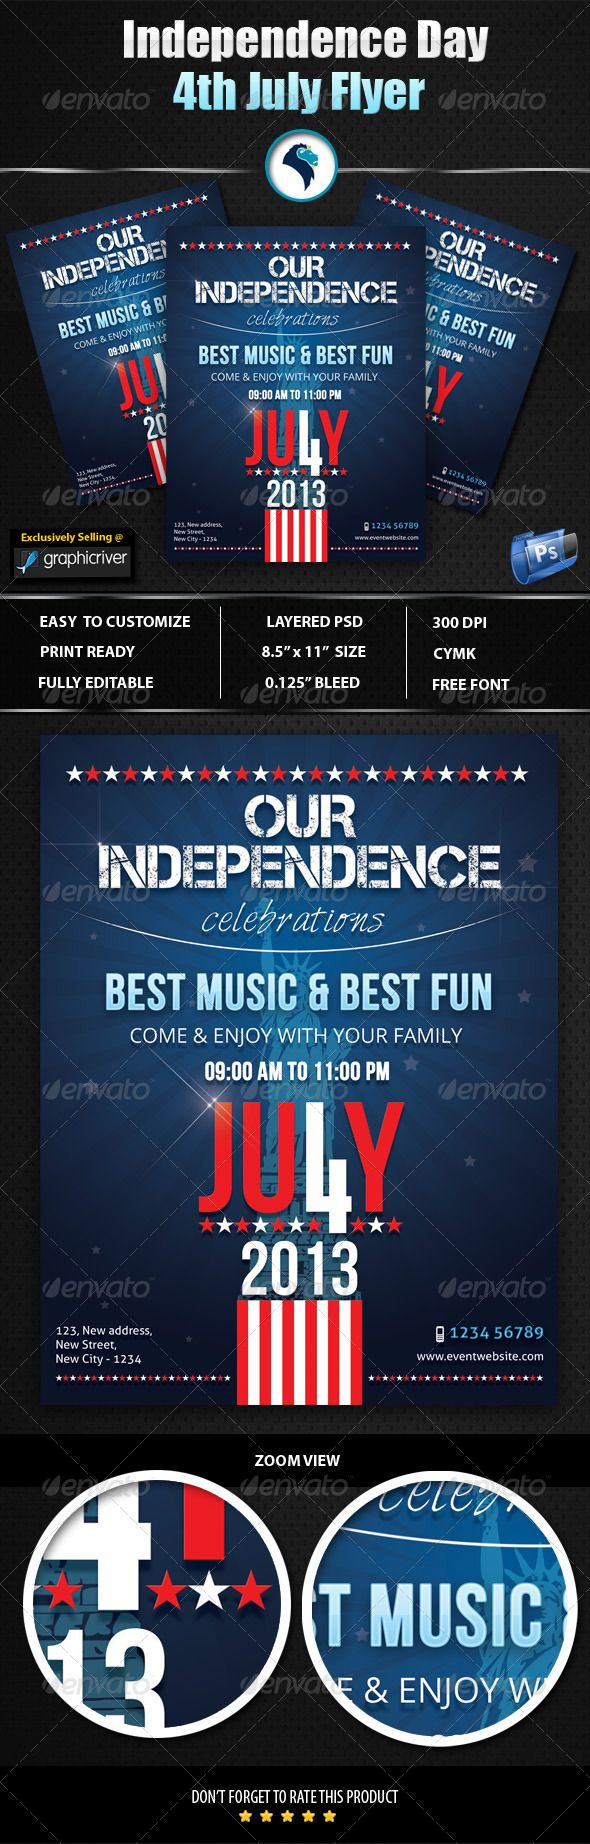 best images about flyer ideas templates events independence day 4th flyer holidays events 6